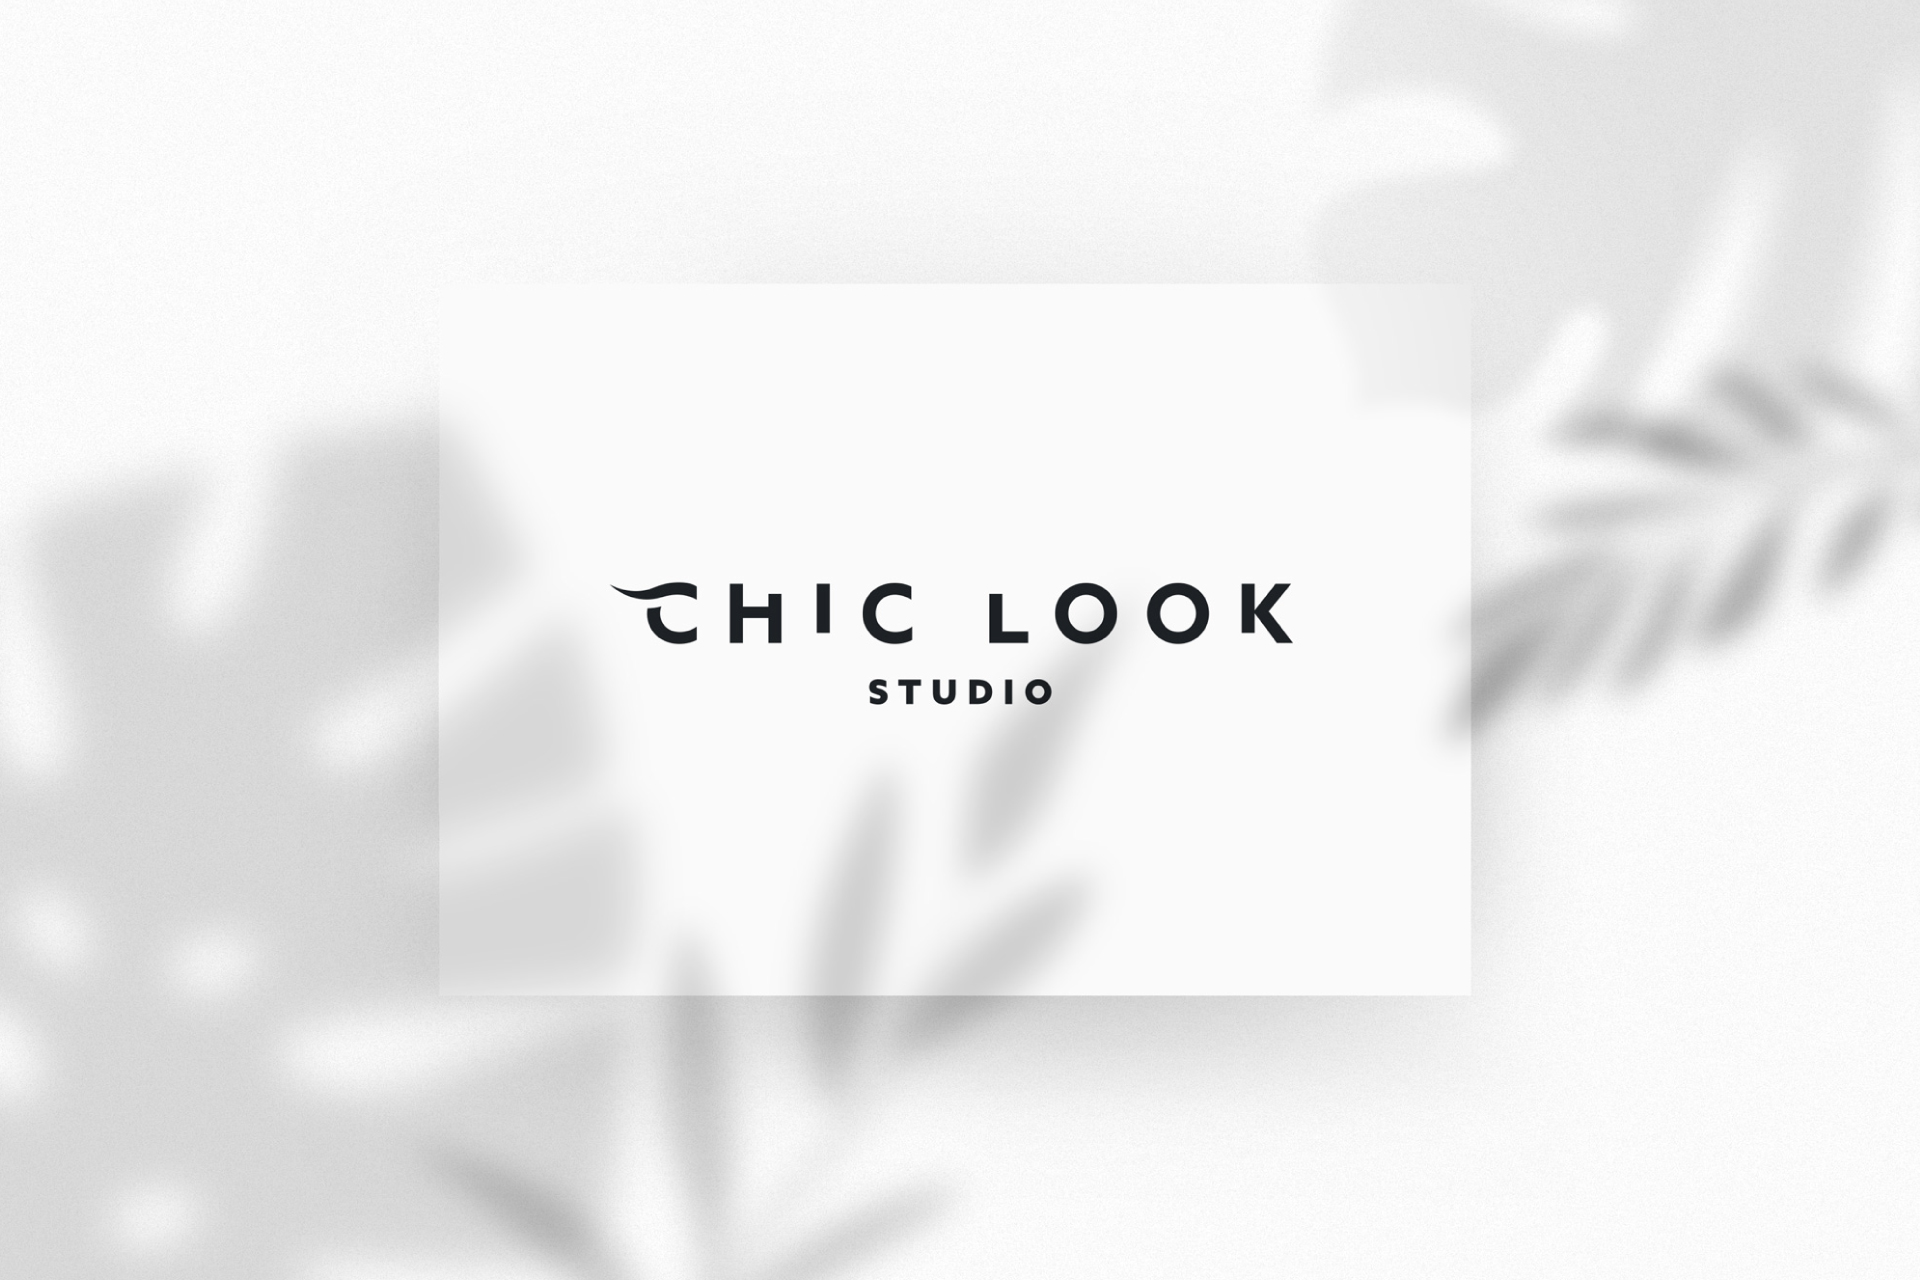 chiclook logo